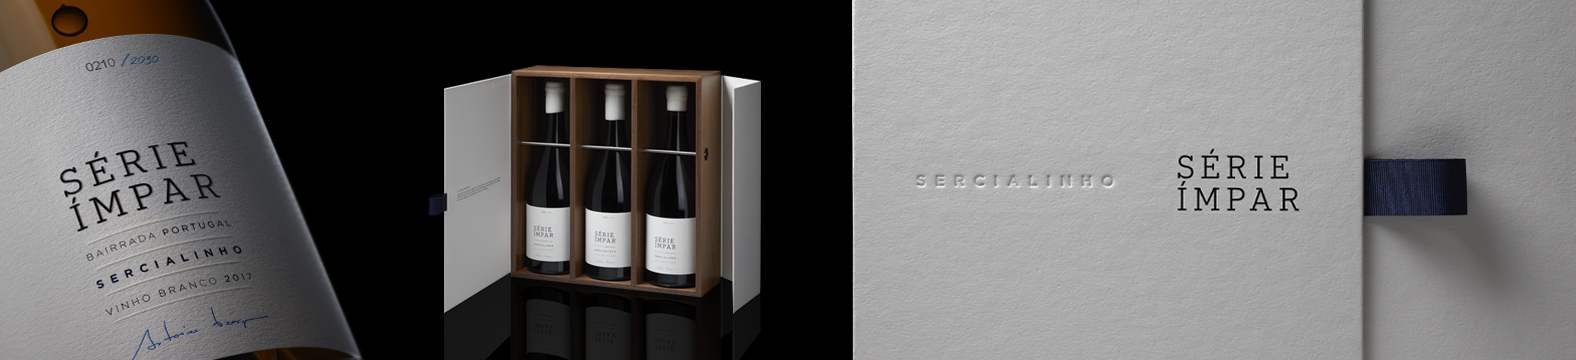 Omdesign signs the first Série Ímpar of Sogrape